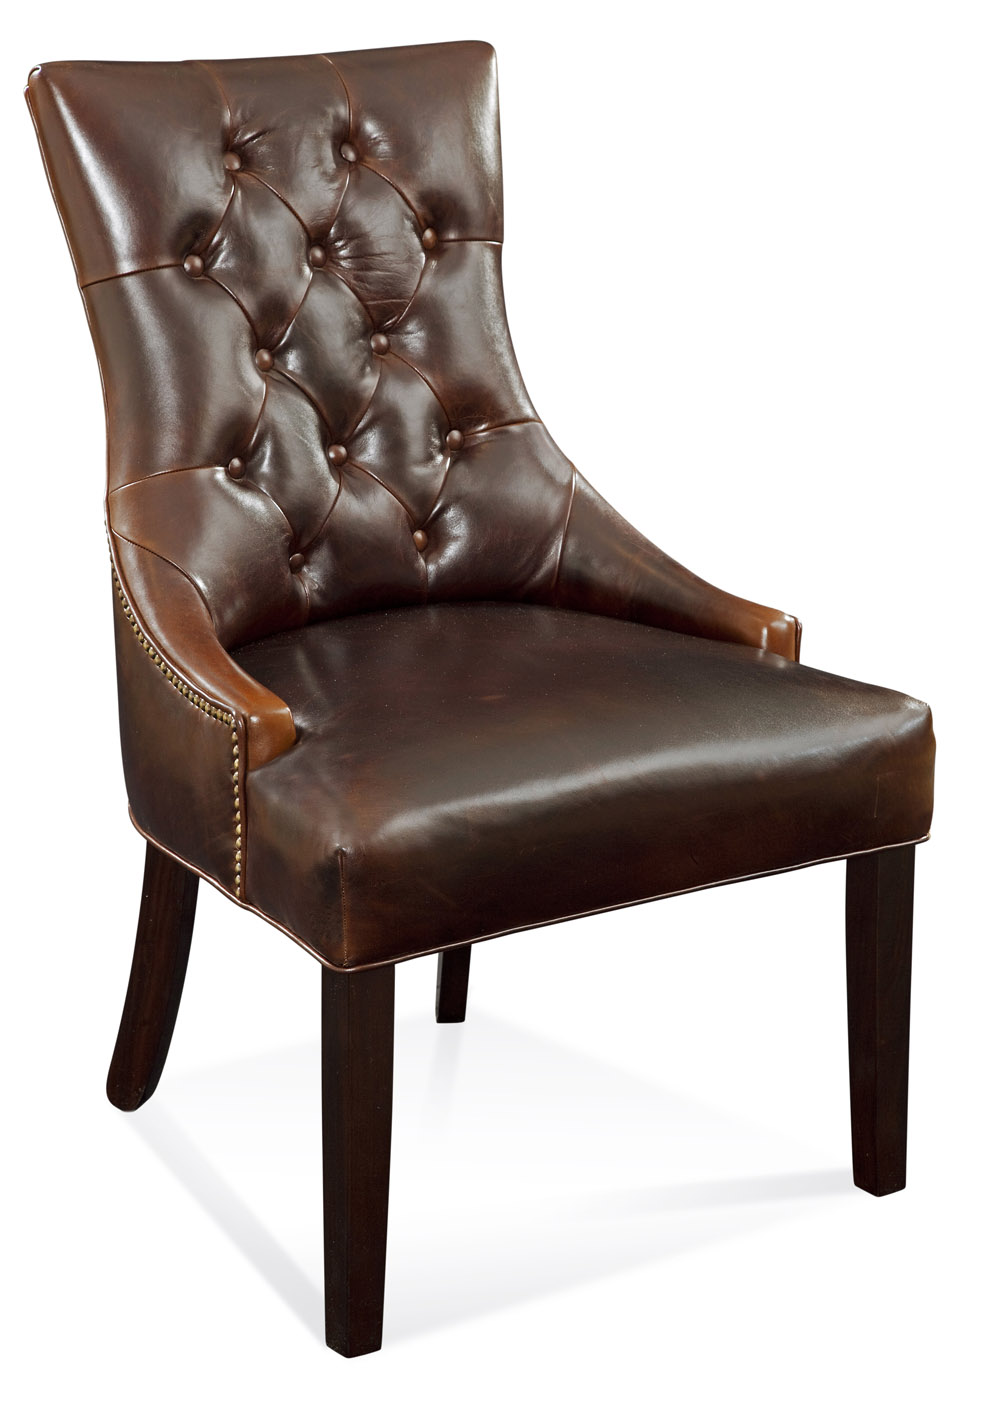 Bassett Fortnum Tufted Nailhead Parsons Chair in Leather (Brown Leather) by